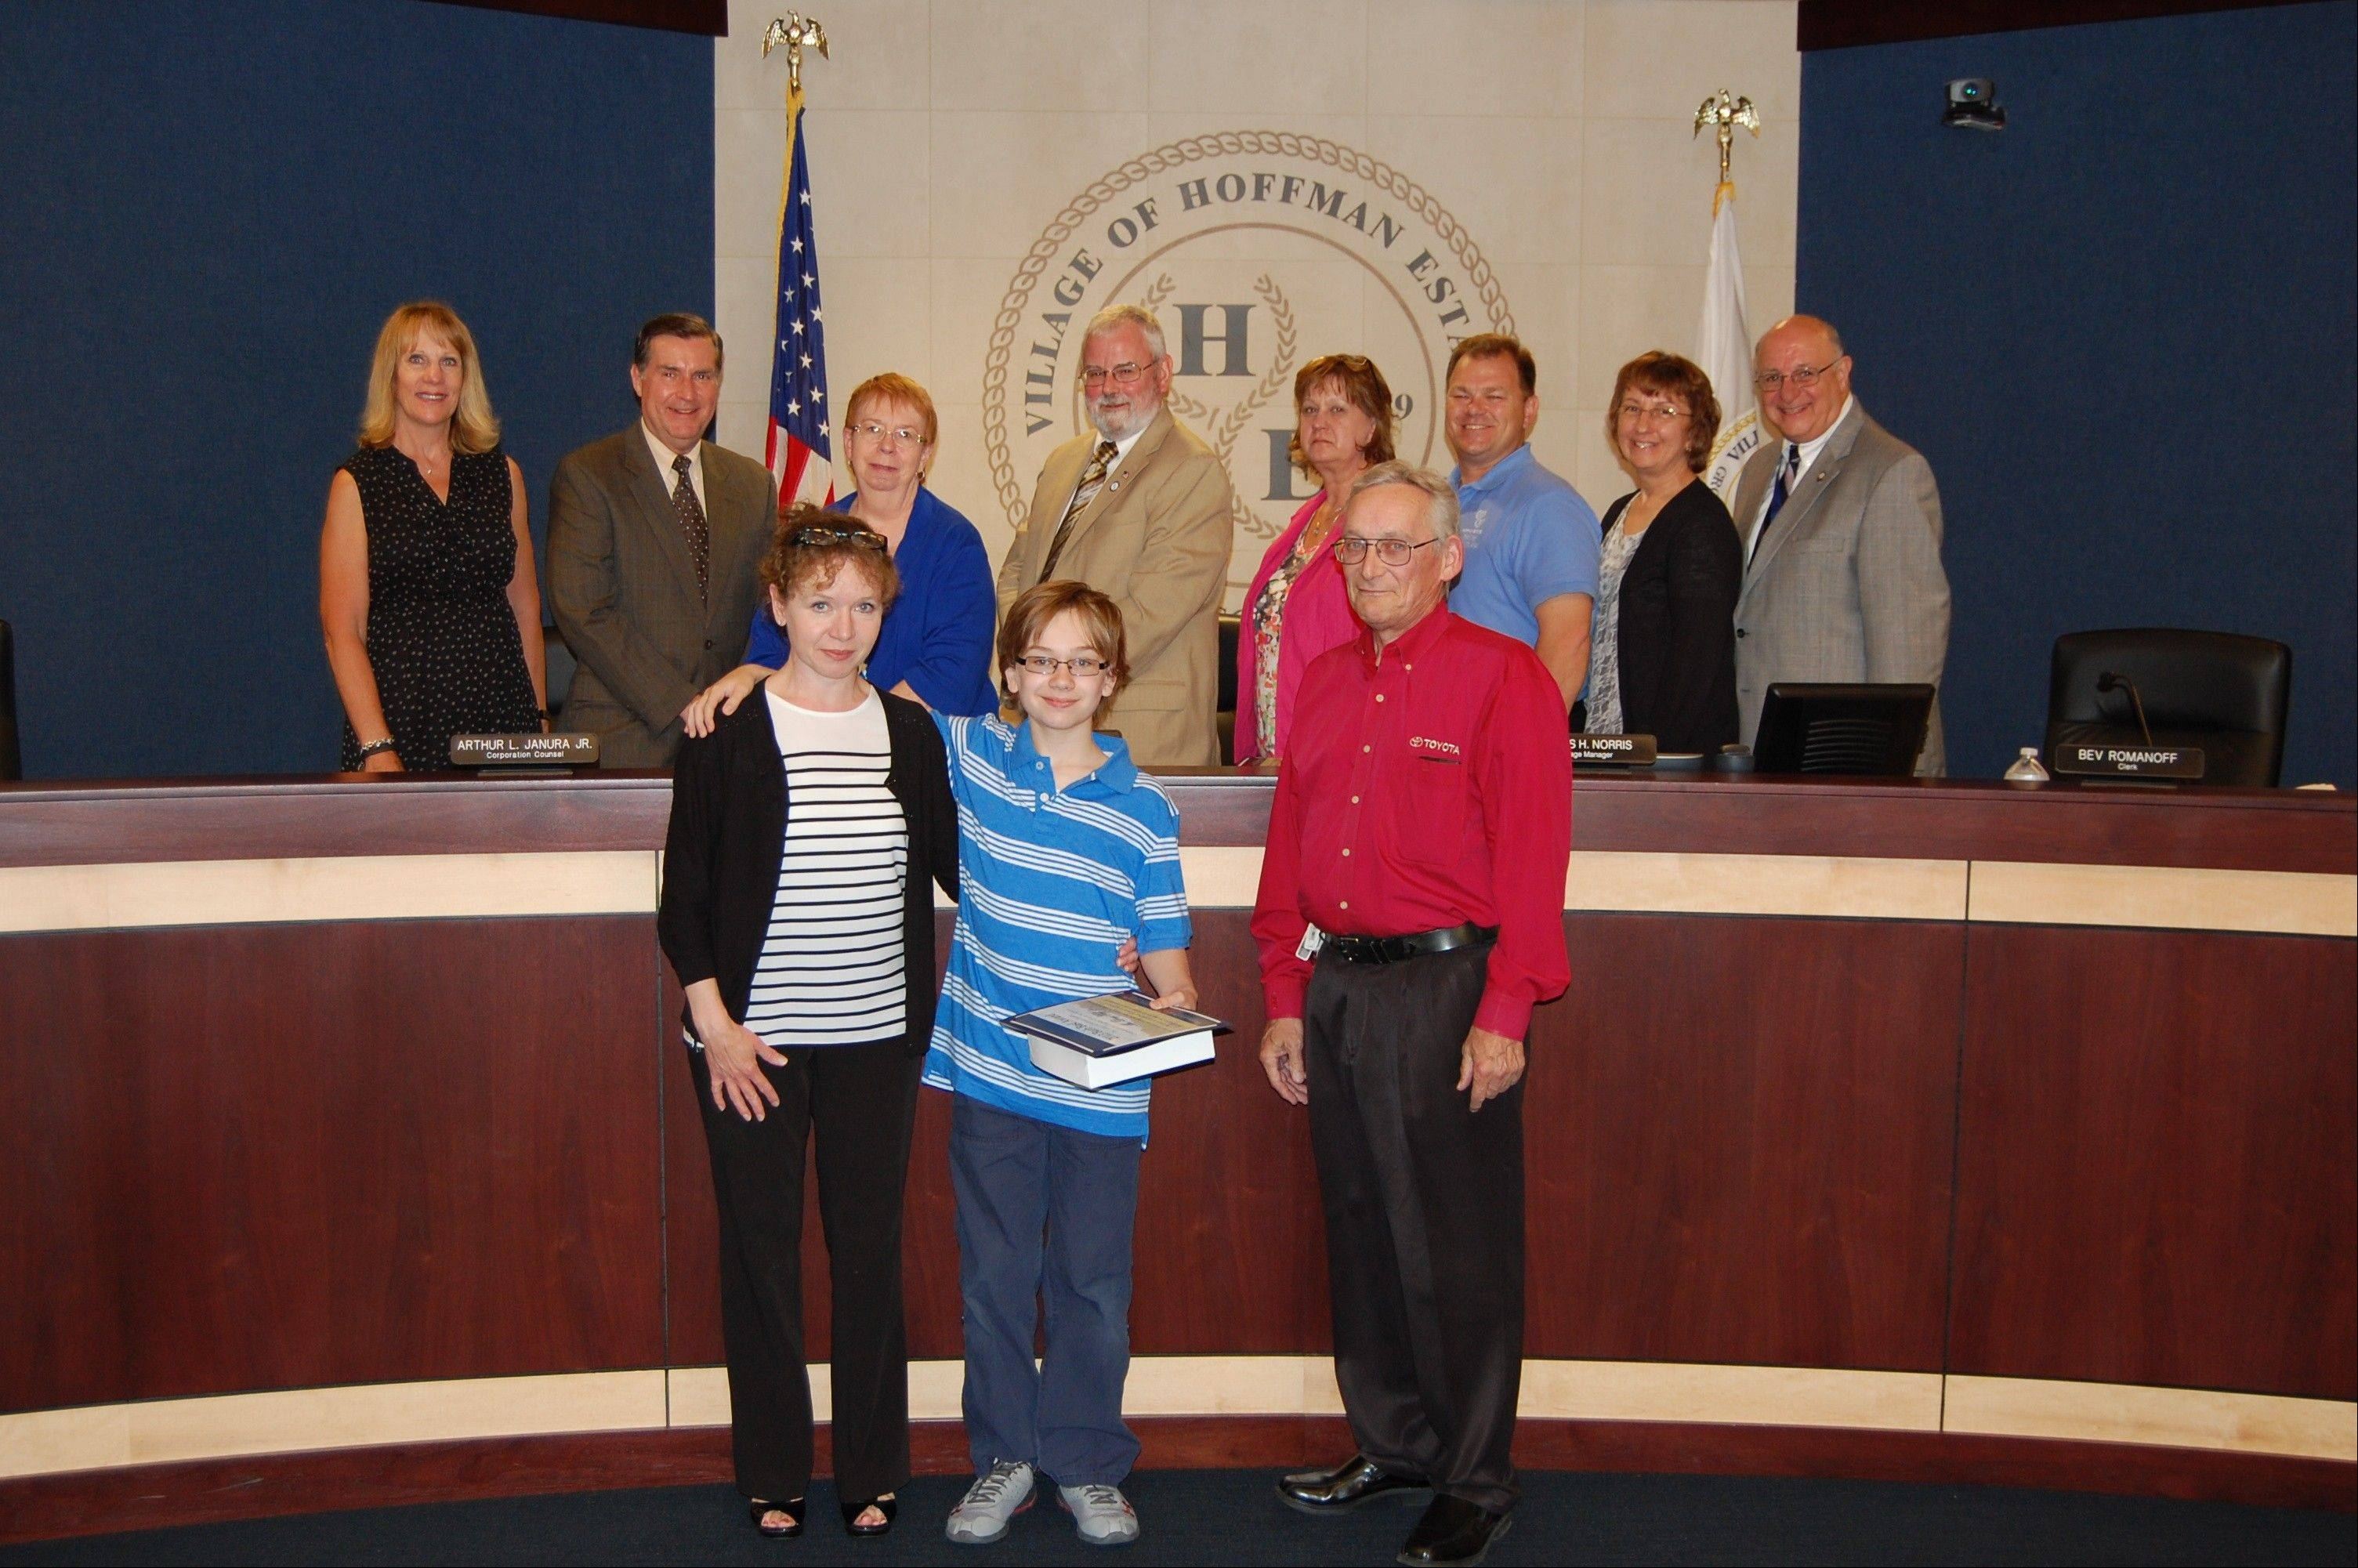 Doug Hill, center, a 2013 recipient of the Barb Basl Award, pictured with the Hoffman Estates village board and his family.